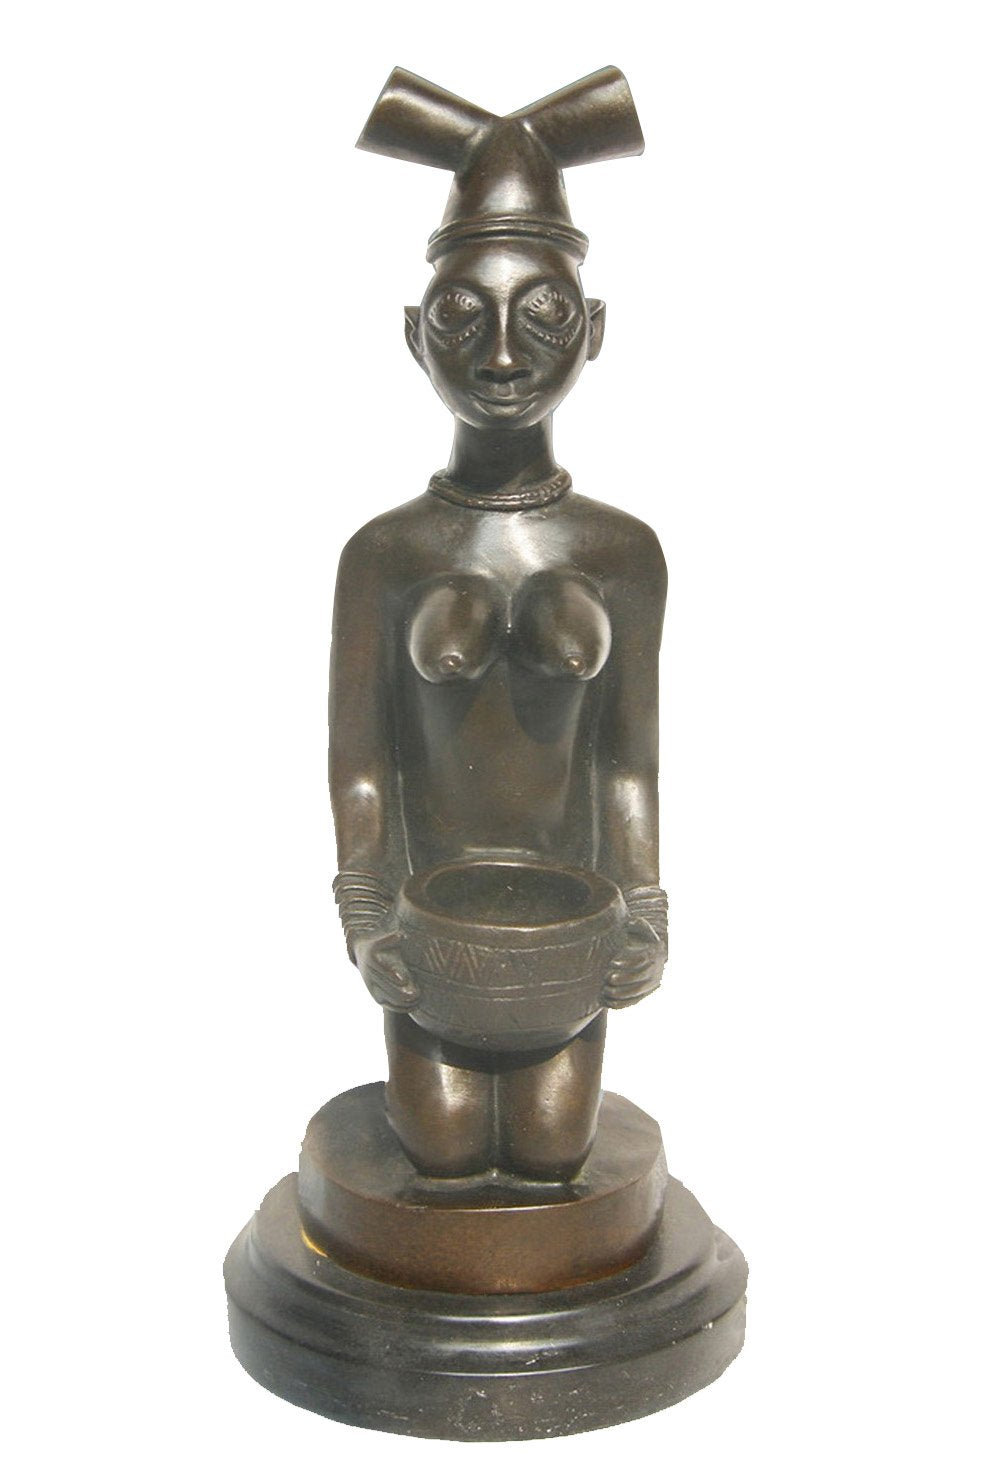 TPY-149 bronze sculpture